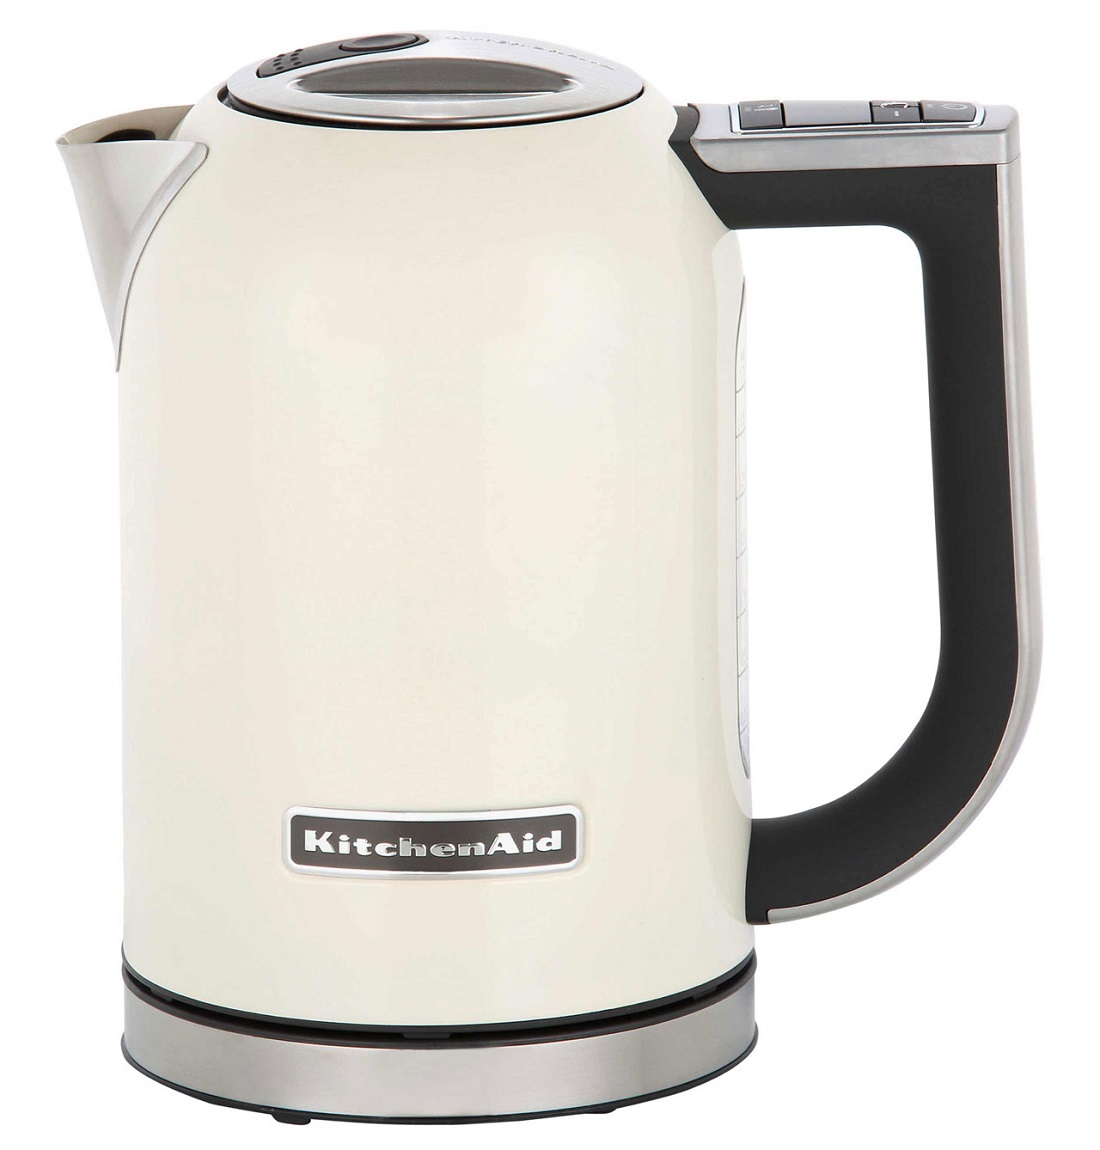 KitchenAid 5KEK1722BAC Jug Kettle Digital Temperature Control Rapid Boil 17L -> Kitchenaid Jug Kettle